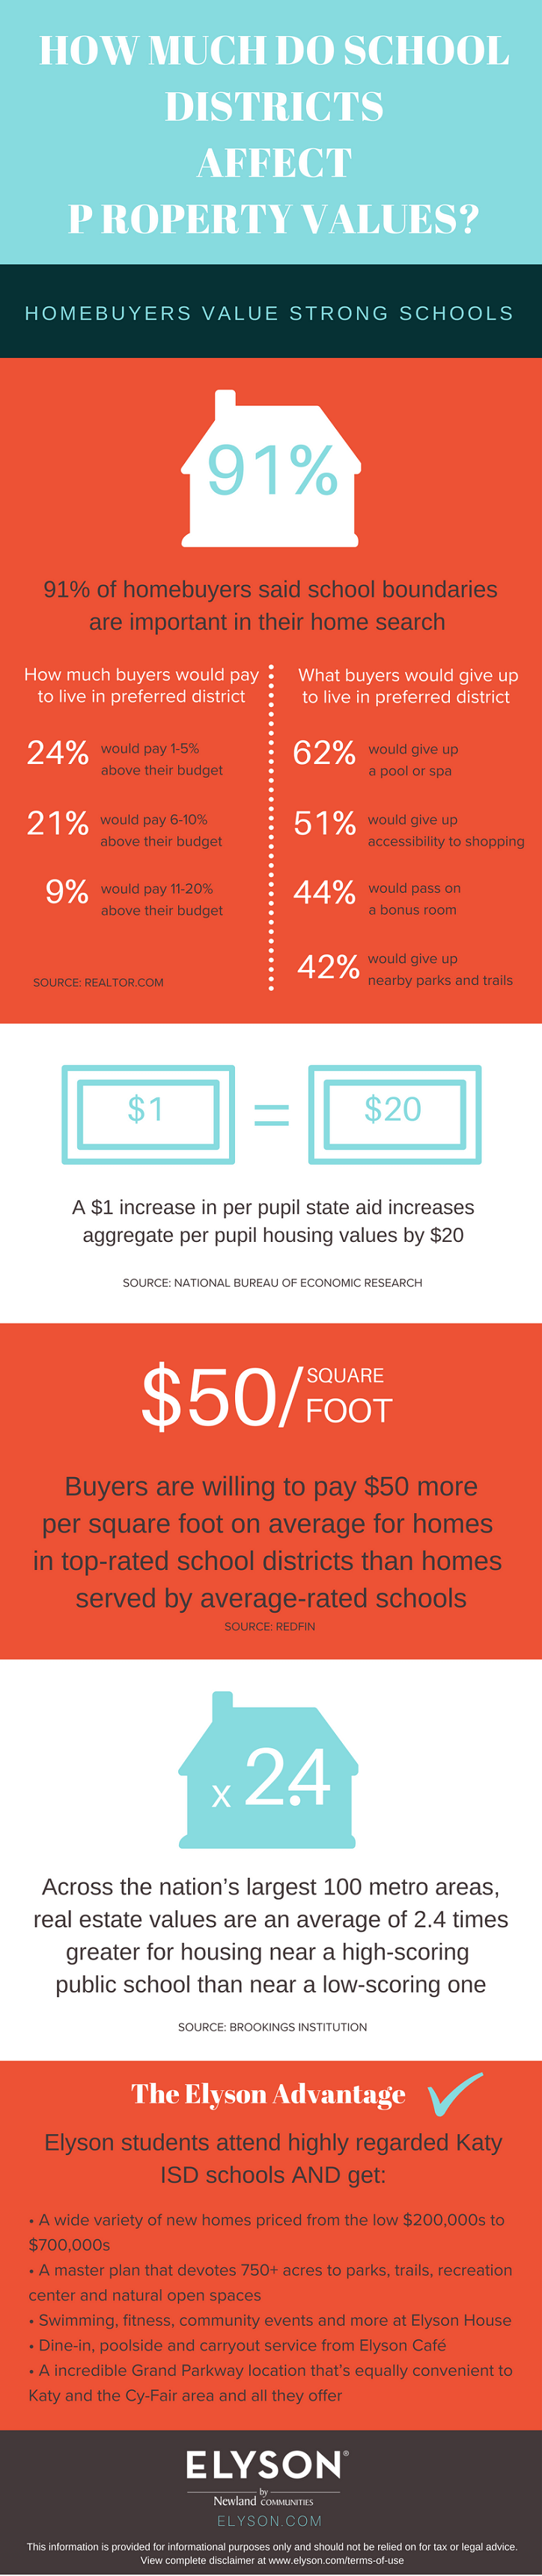 Infographic: How school districts affect property values